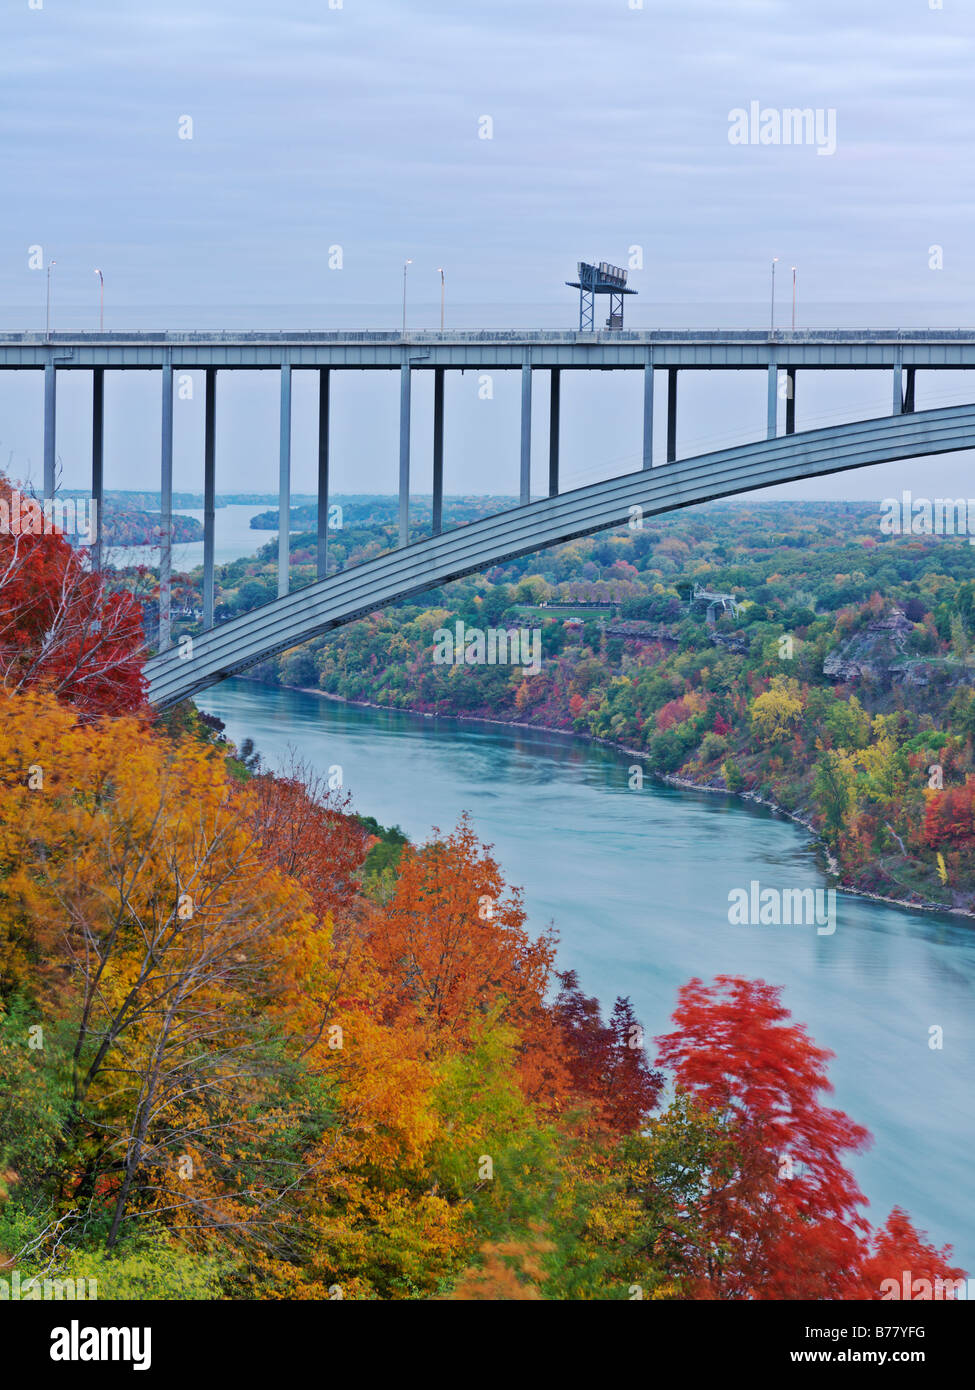 Canada Ontario Queenston Queenston Lewiston Bridge spanning the Niagara River and connects Canada to the USA - Stock Image